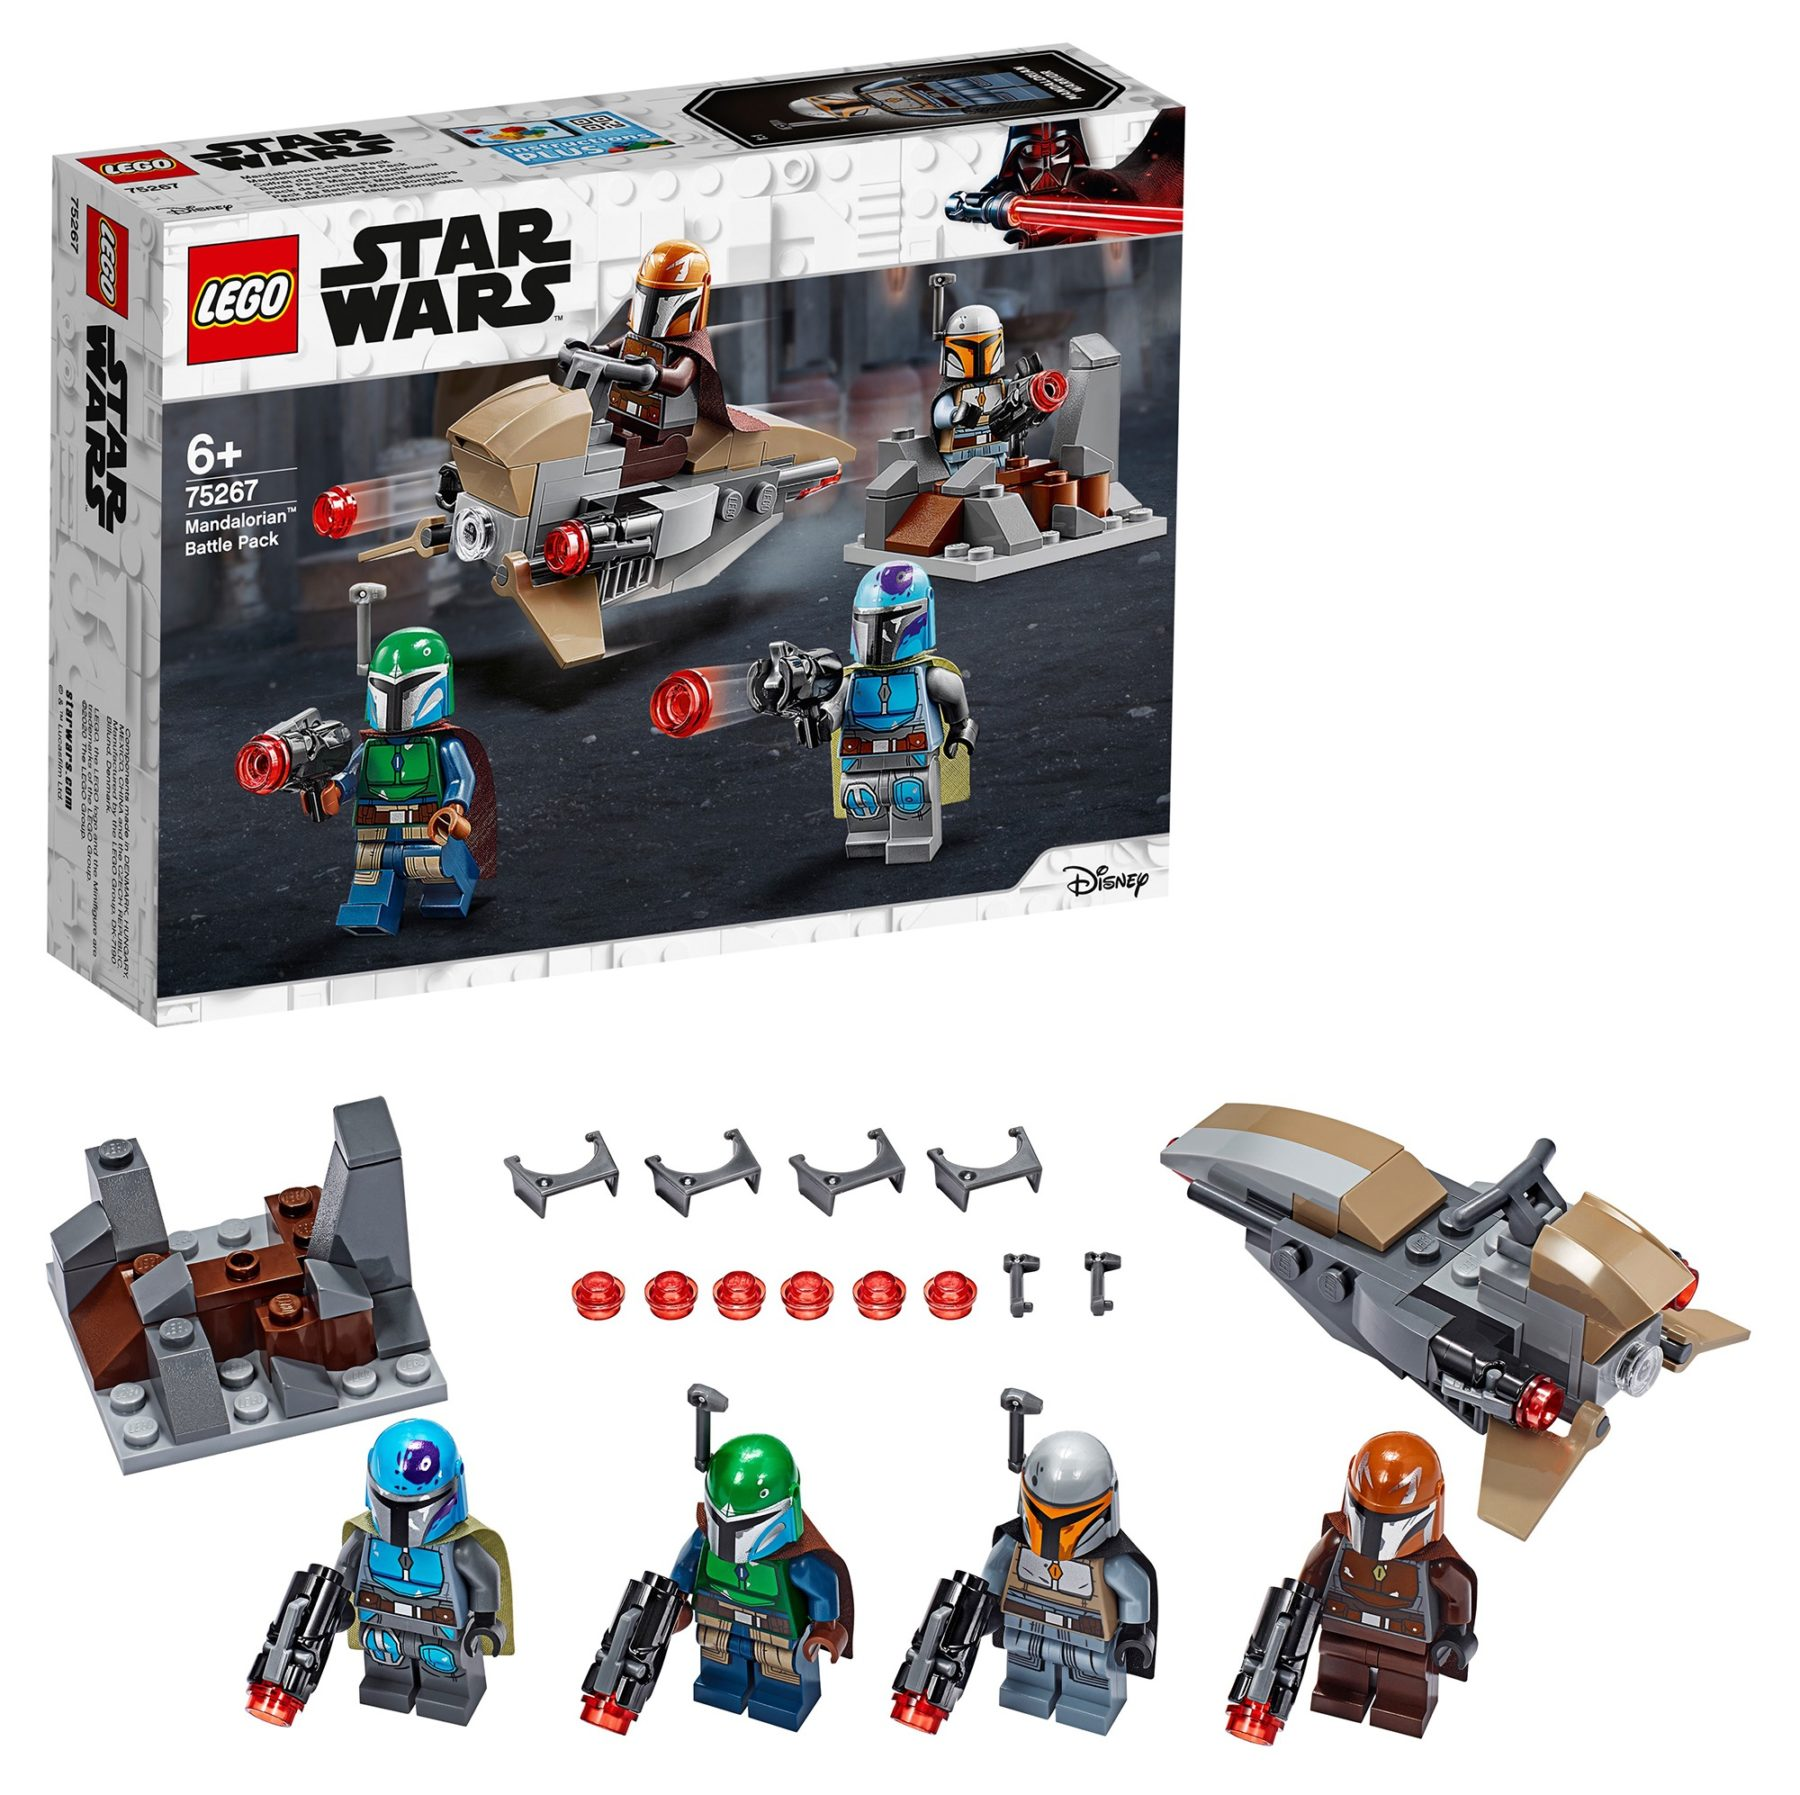 LEGO 75267 Mandalorian Battle Pack Minifigures